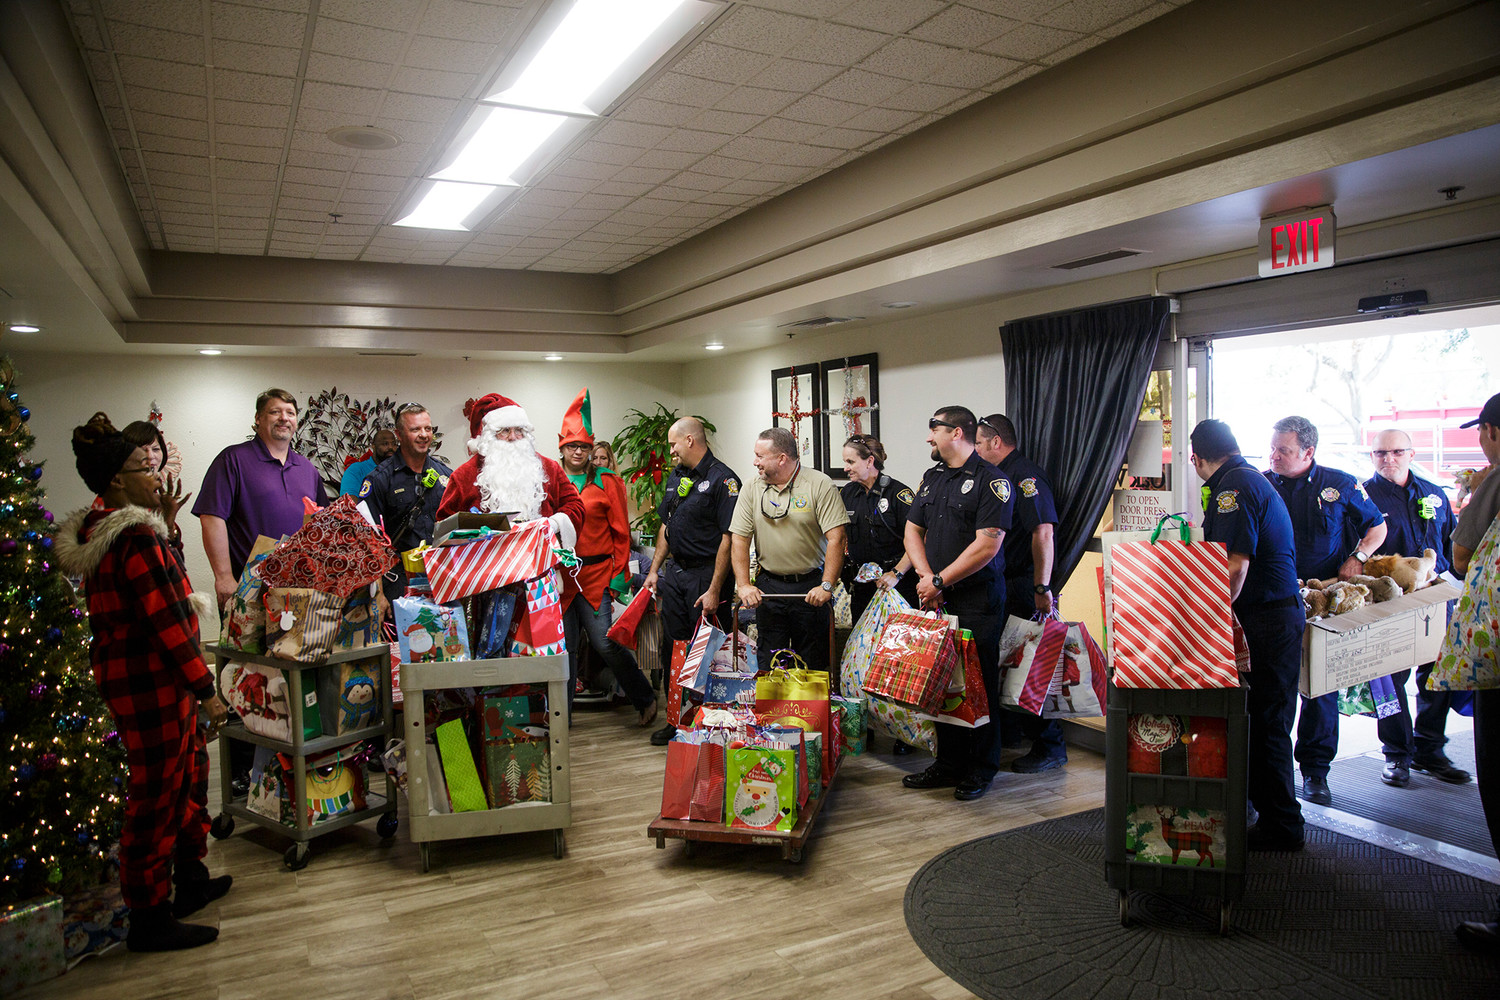 Members of the Orange Park Police Department and Fire Department delivered gifts Thursday at Oak View Rehabilitation Center in Orange Park as part of the annual Home Instead Christmas gift deliveries.